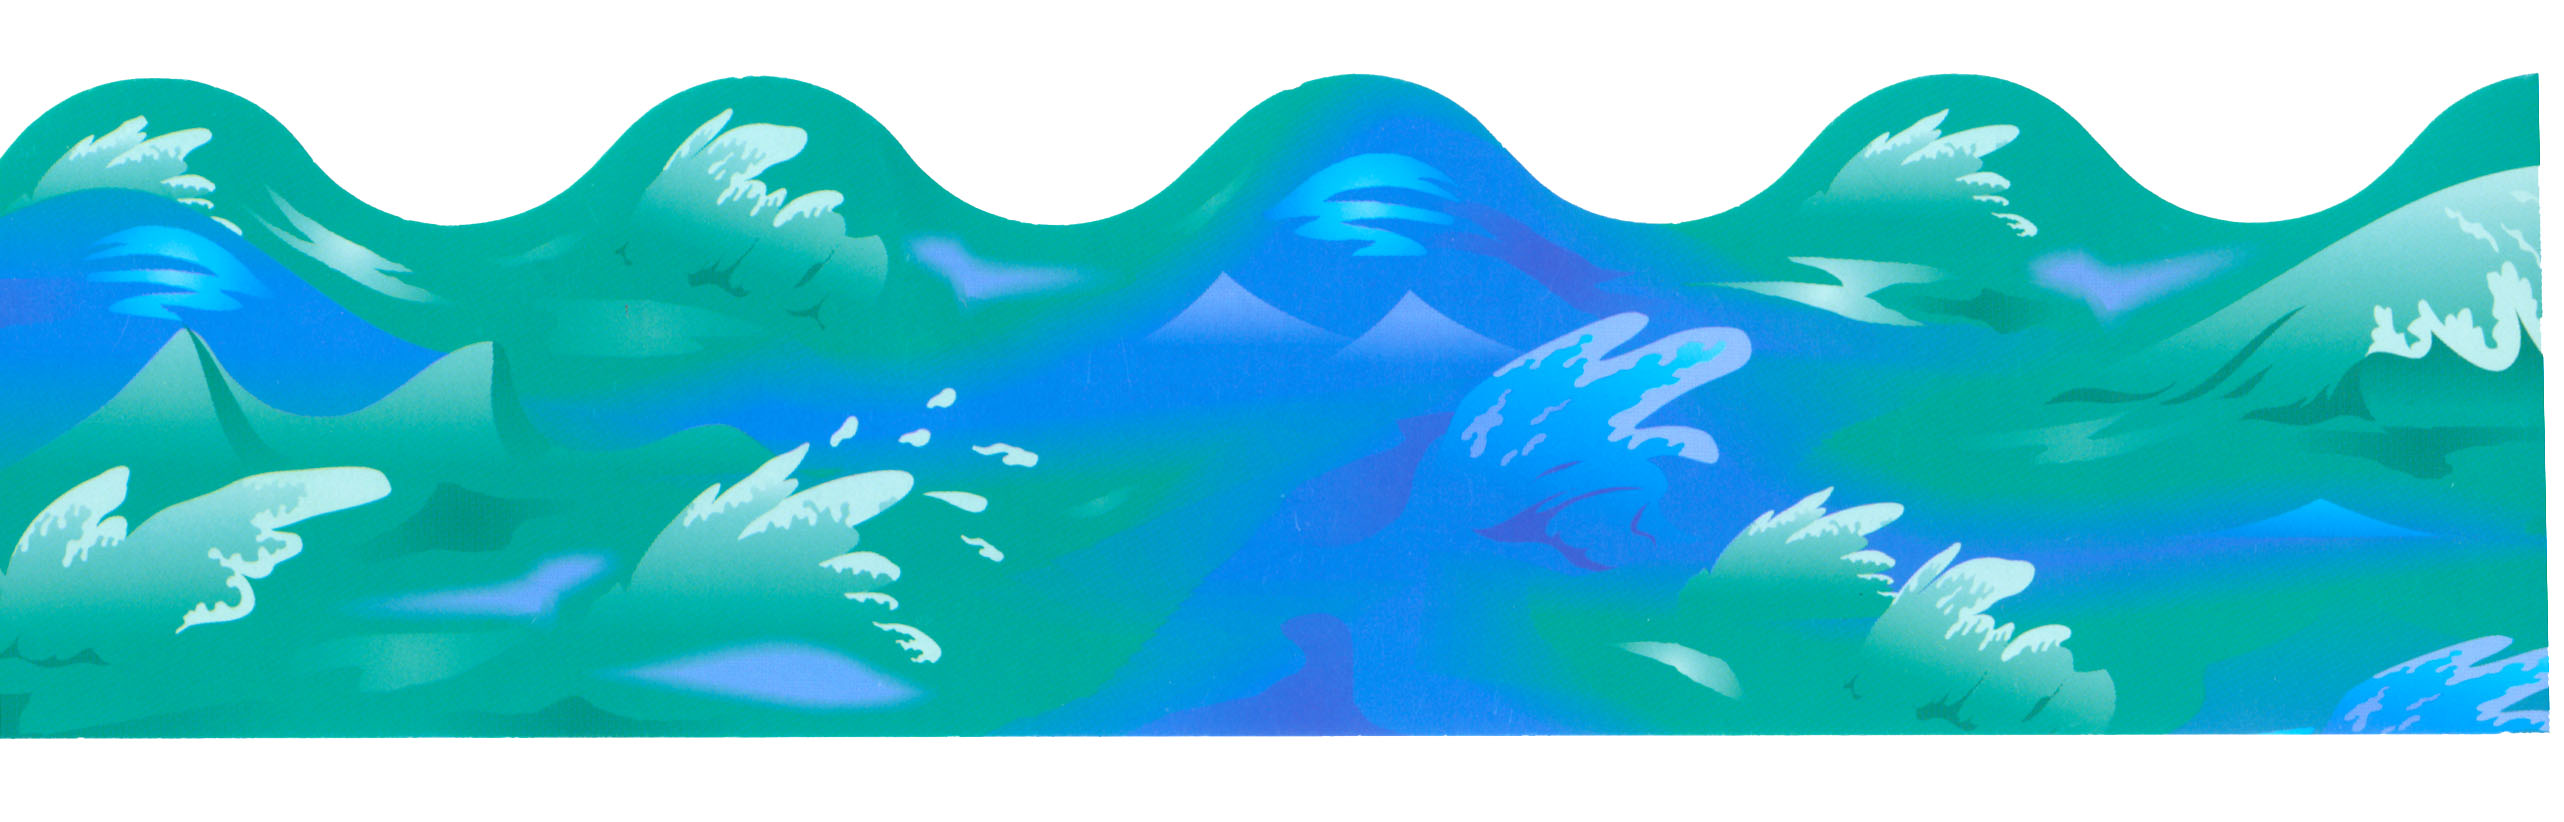 Clipart Waves & Waves Clip Art Images.